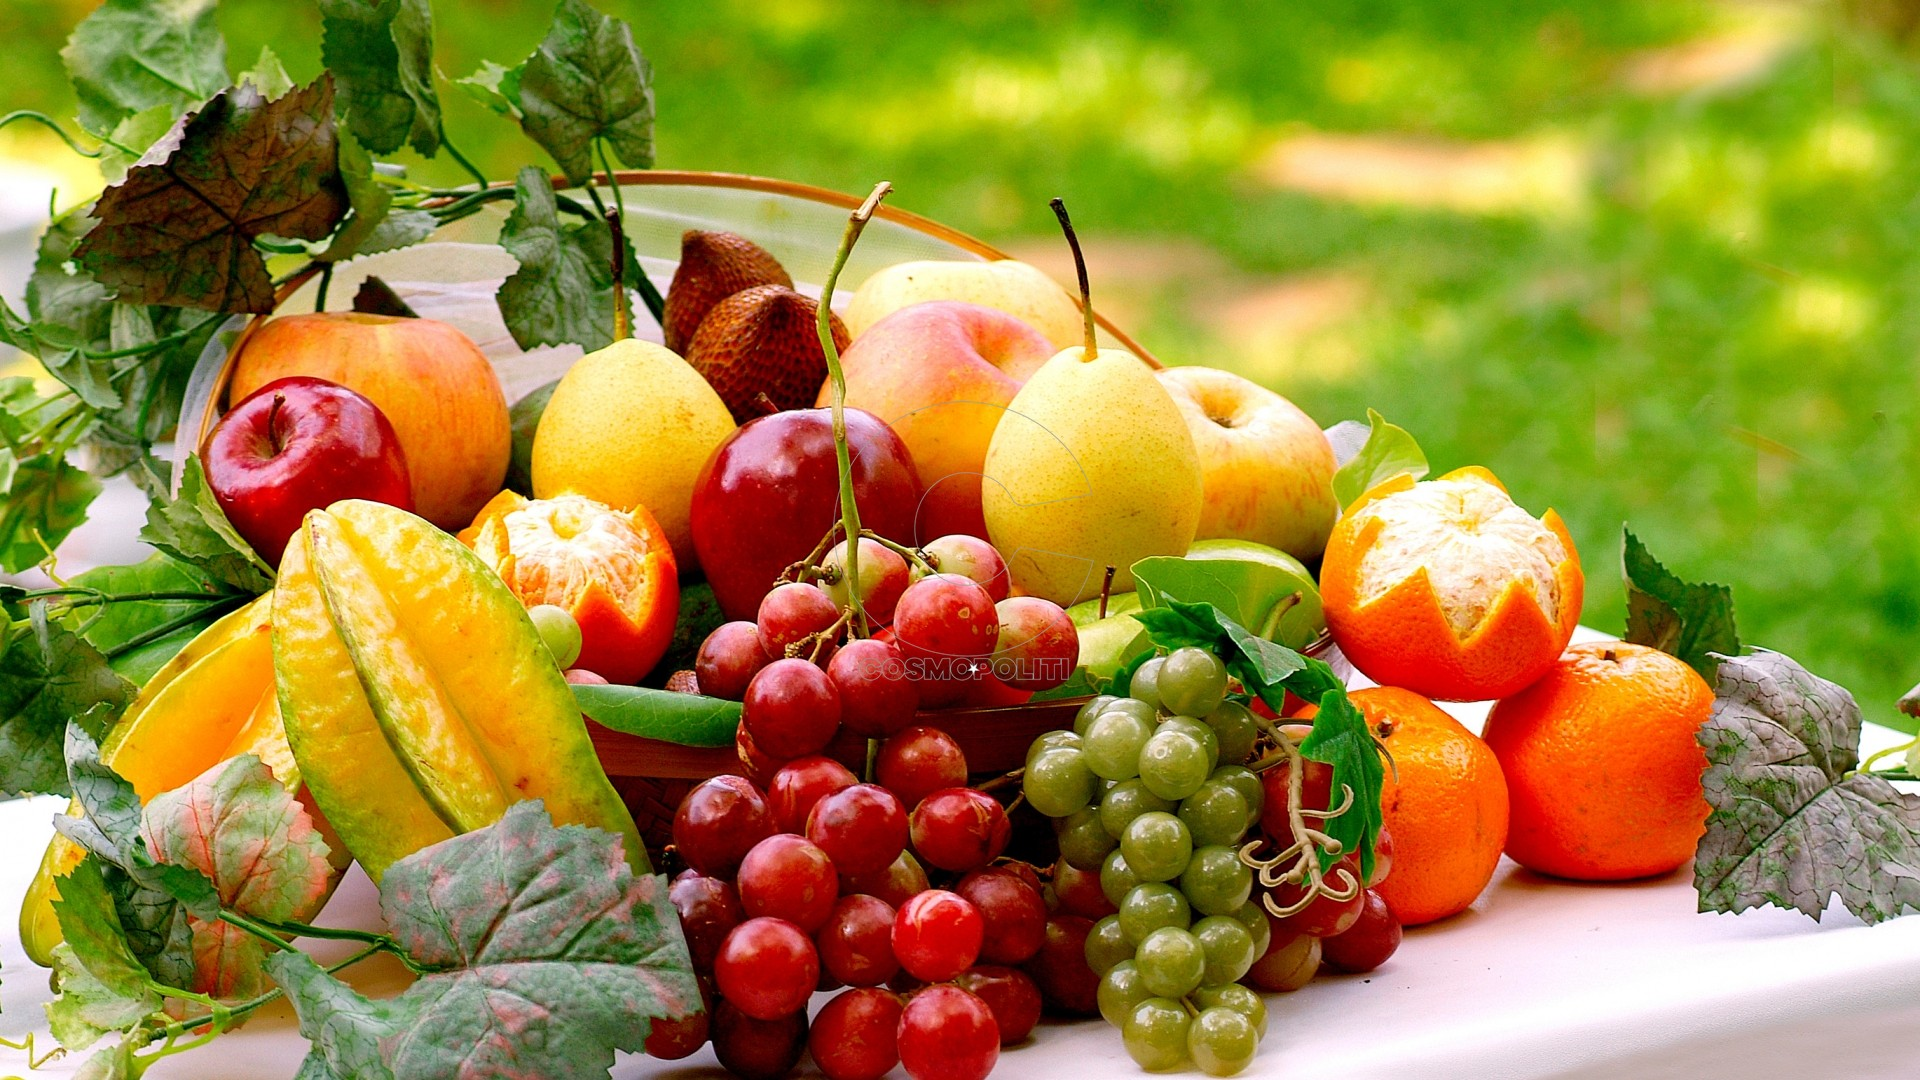 healthy-fruit-salad-wallpaper